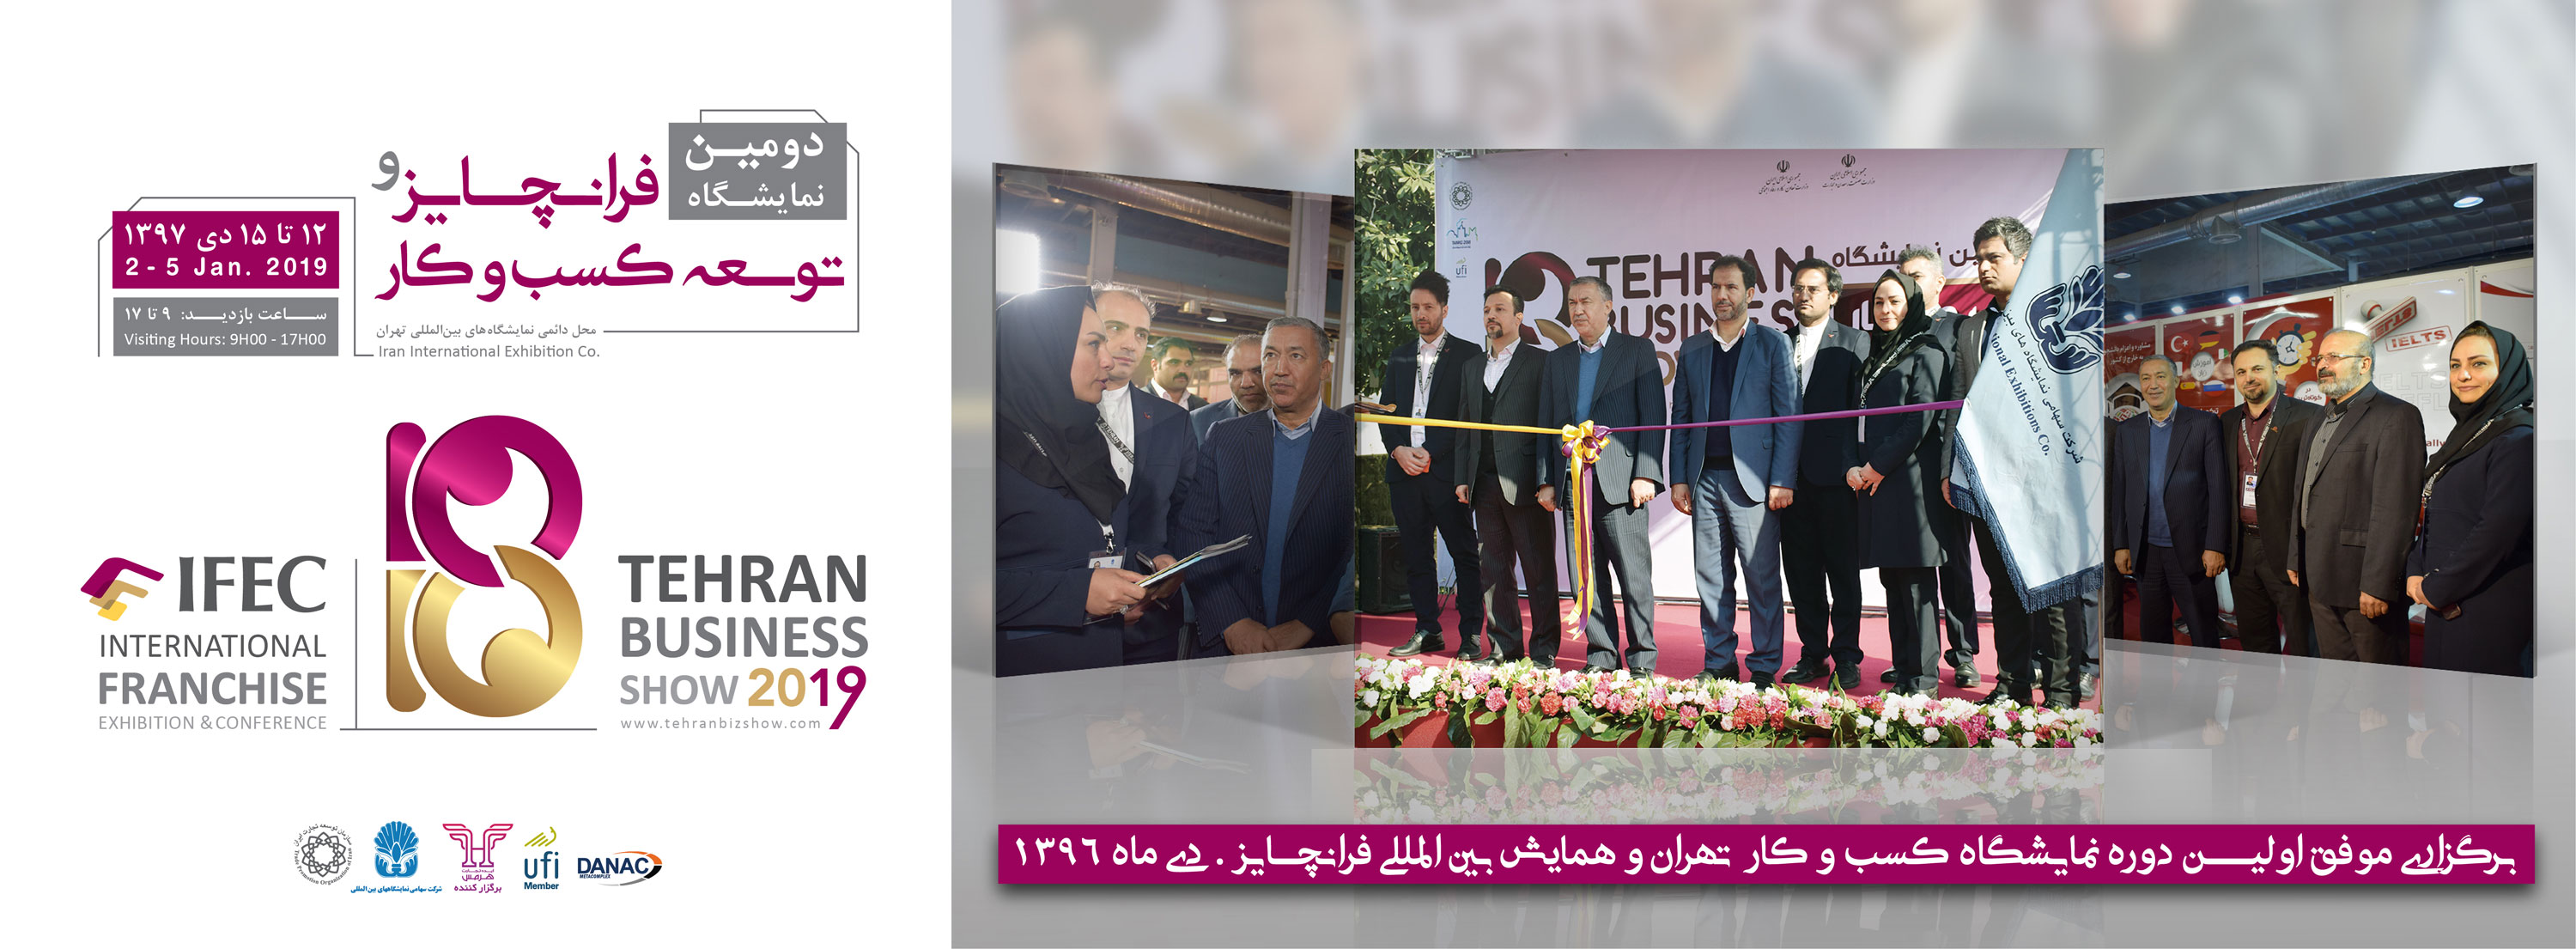 Video Report of the First Tehran Business Show (1)